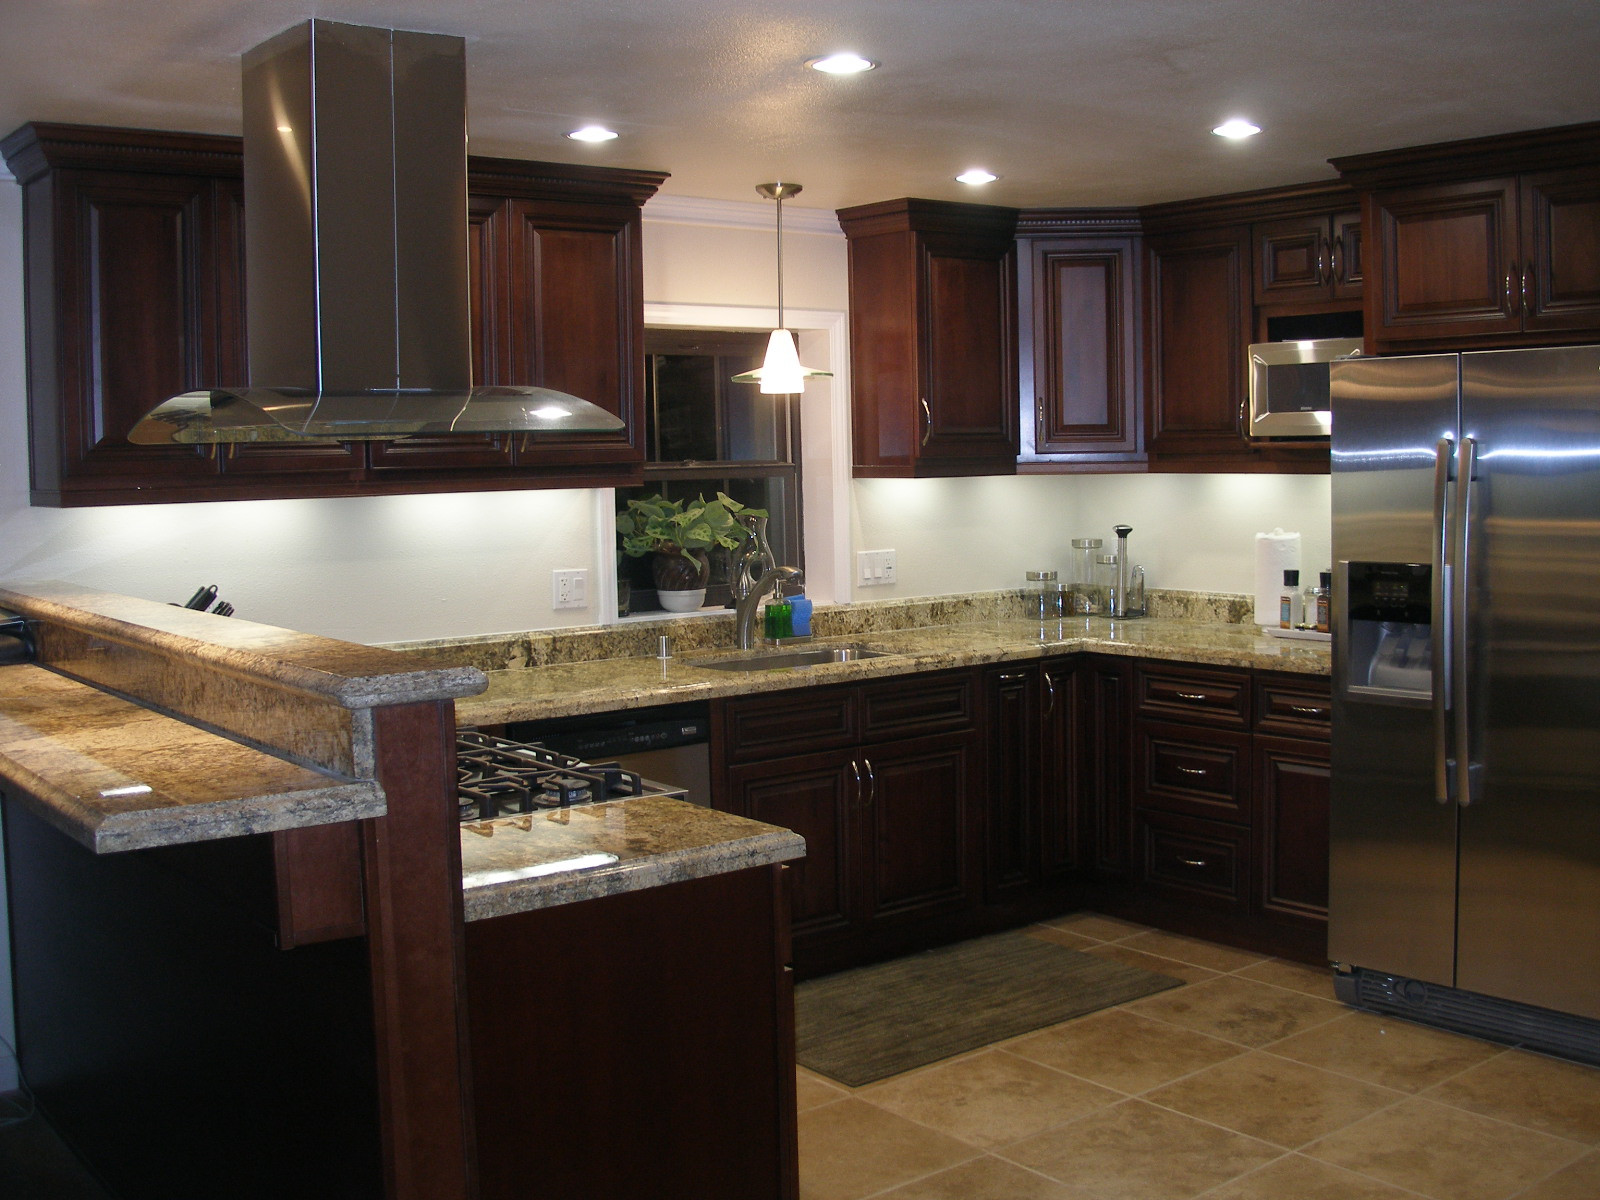 Kitchen remodel bay easy construction for Remodeling kitchen ideas